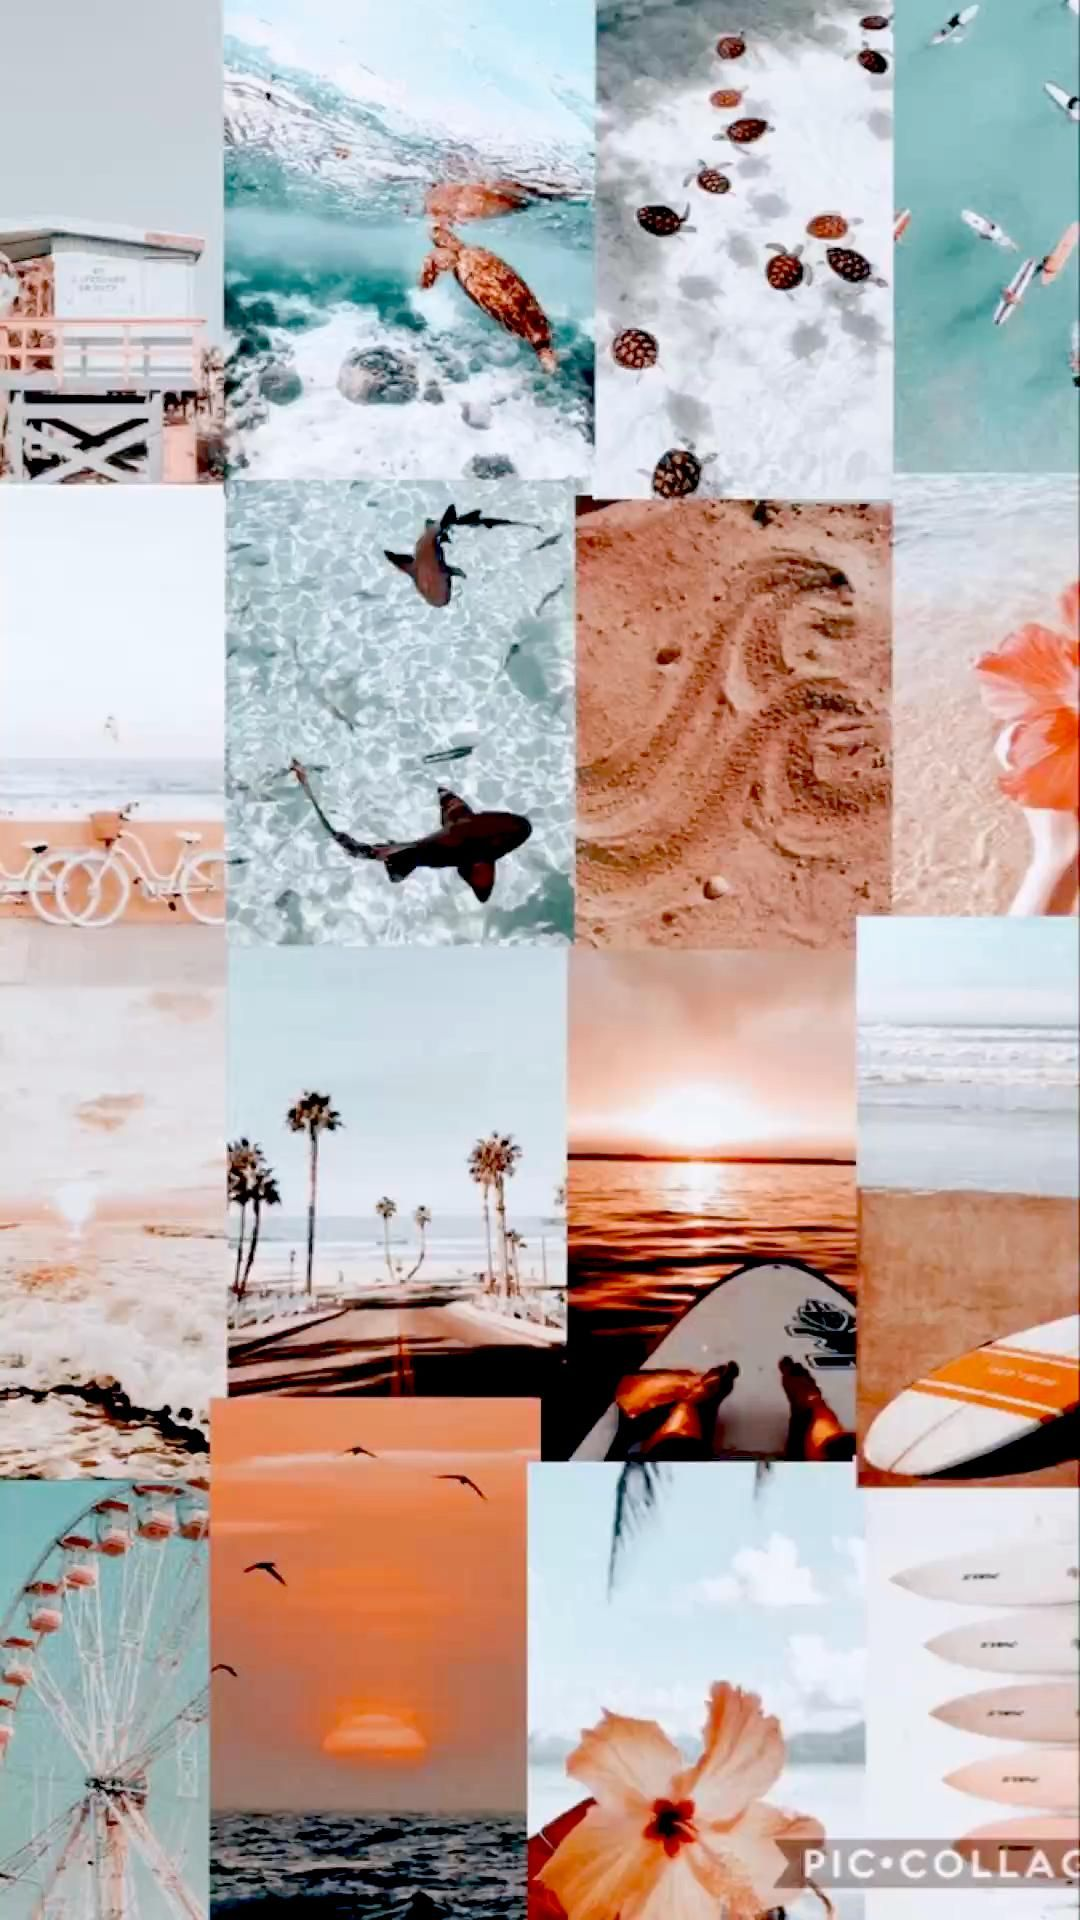 Aesthetic wallpapers for iPhone 😊